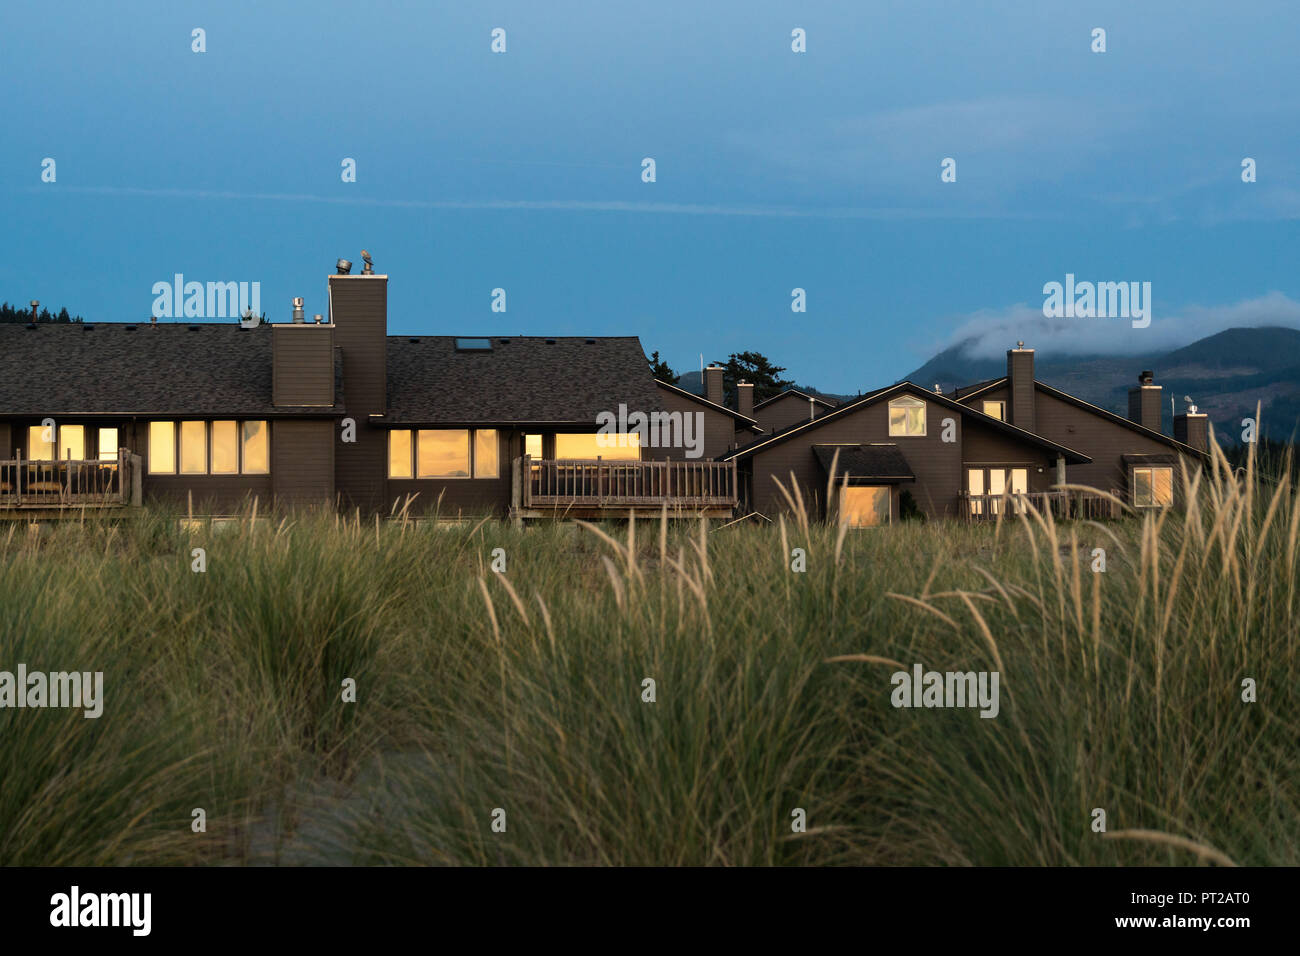 Enjoyable Pacific Coast Cannon Beach Cottages In The Evening Light Download Free Architecture Designs Itiscsunscenecom